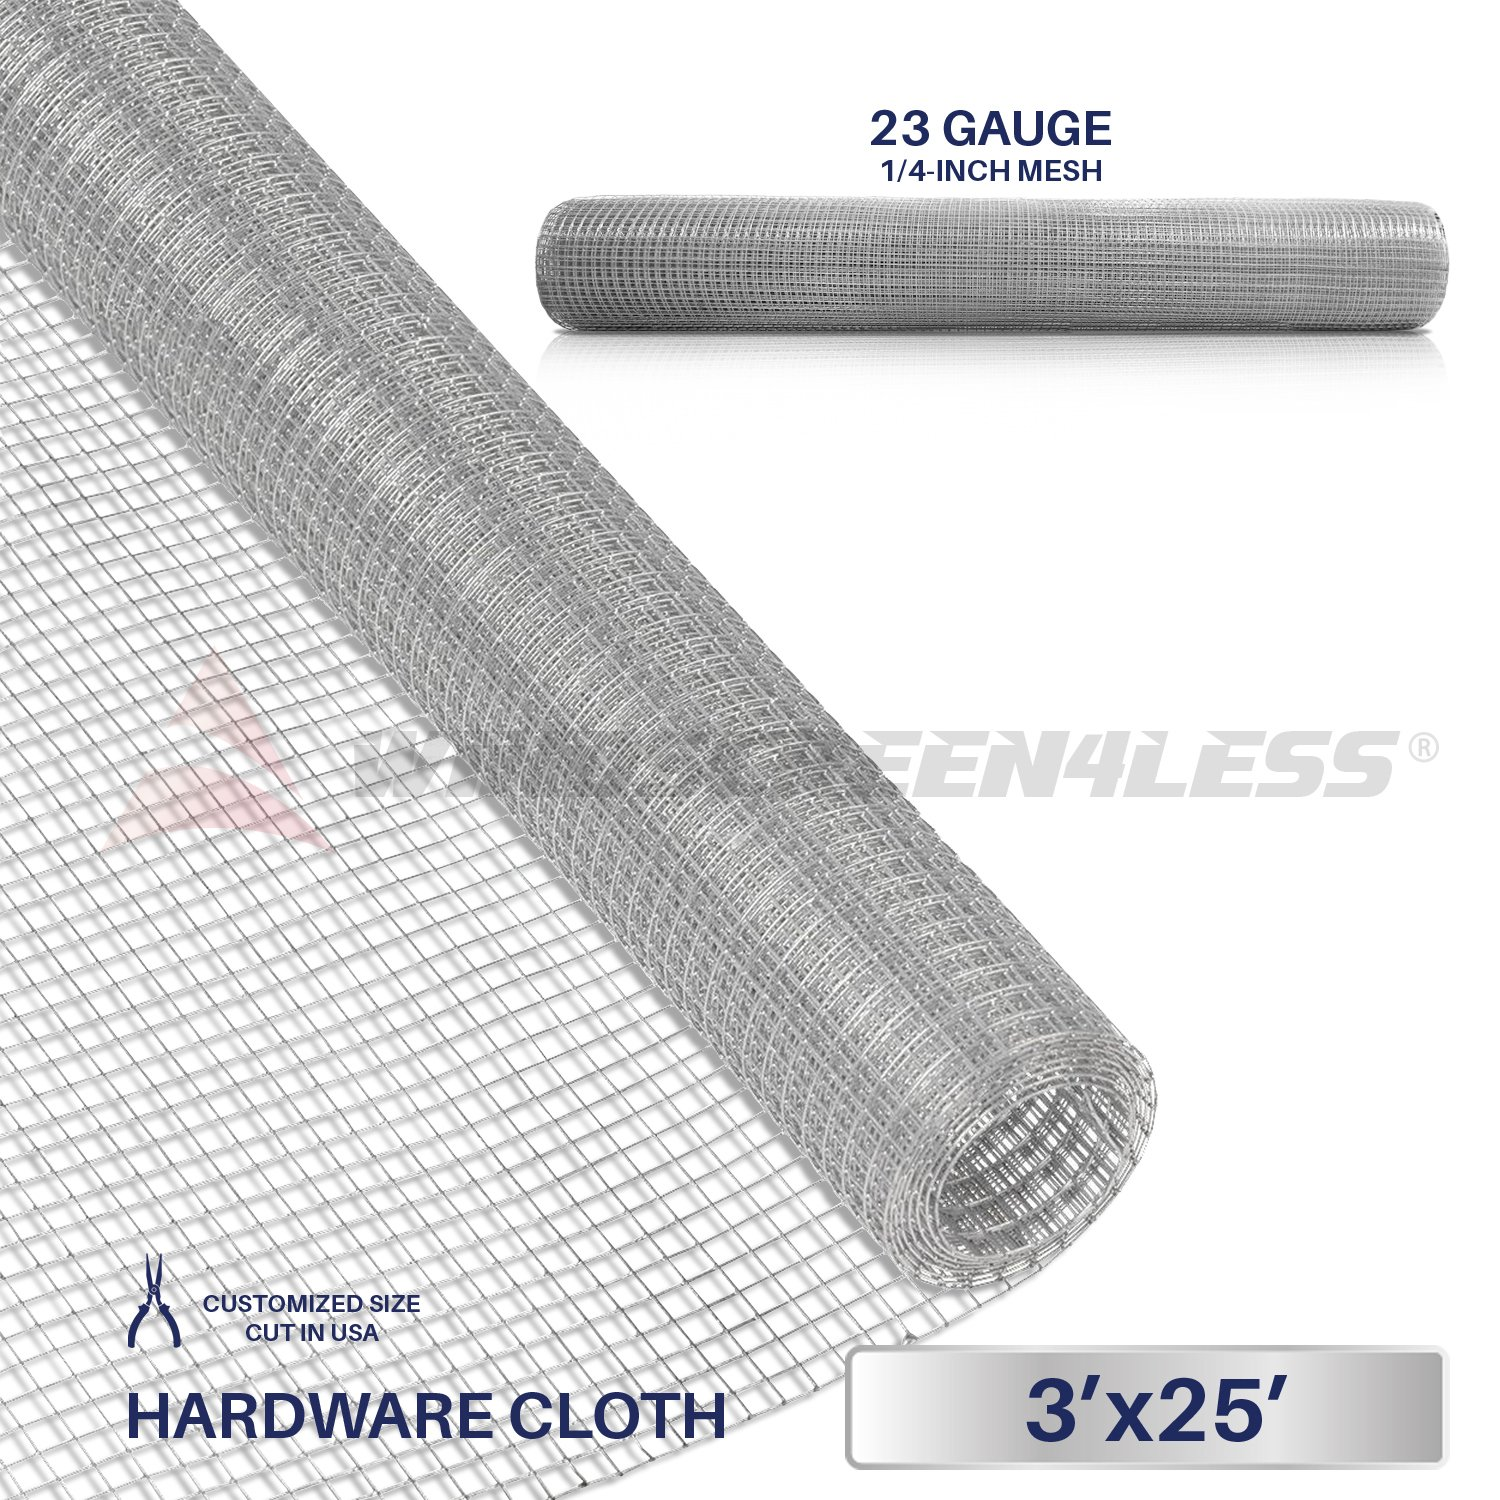 Windscreen4less 23 Gauge 1/4 Inch Square Galvanized Mesh Hardware Cloth 36-Inch Tall Custom Size Cut-to-length 3ft x 25ft